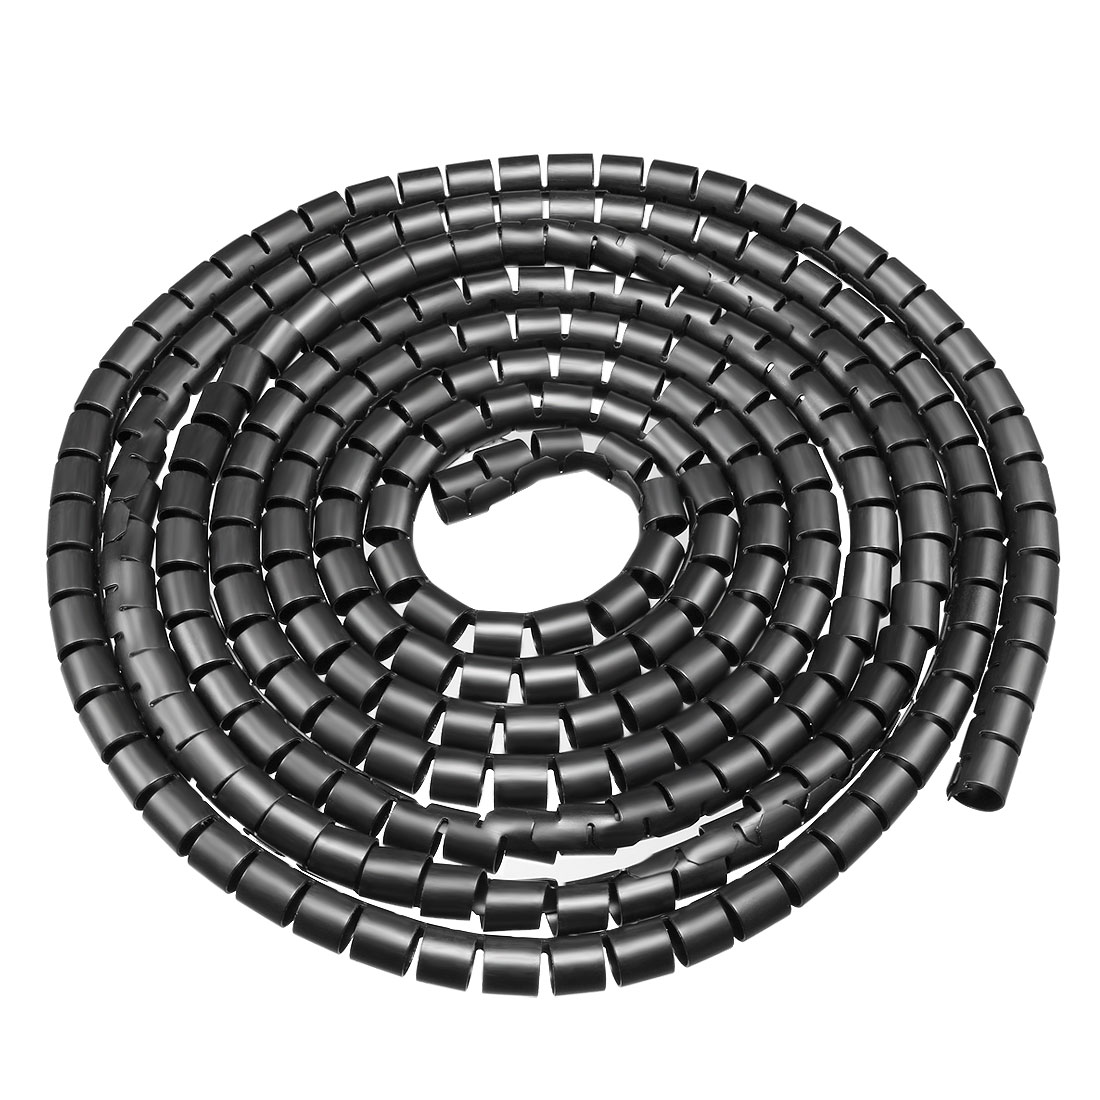 10mm Flexible Spiral Tube Cable Wire Wrap Computer Manage Cords Black 3Meter